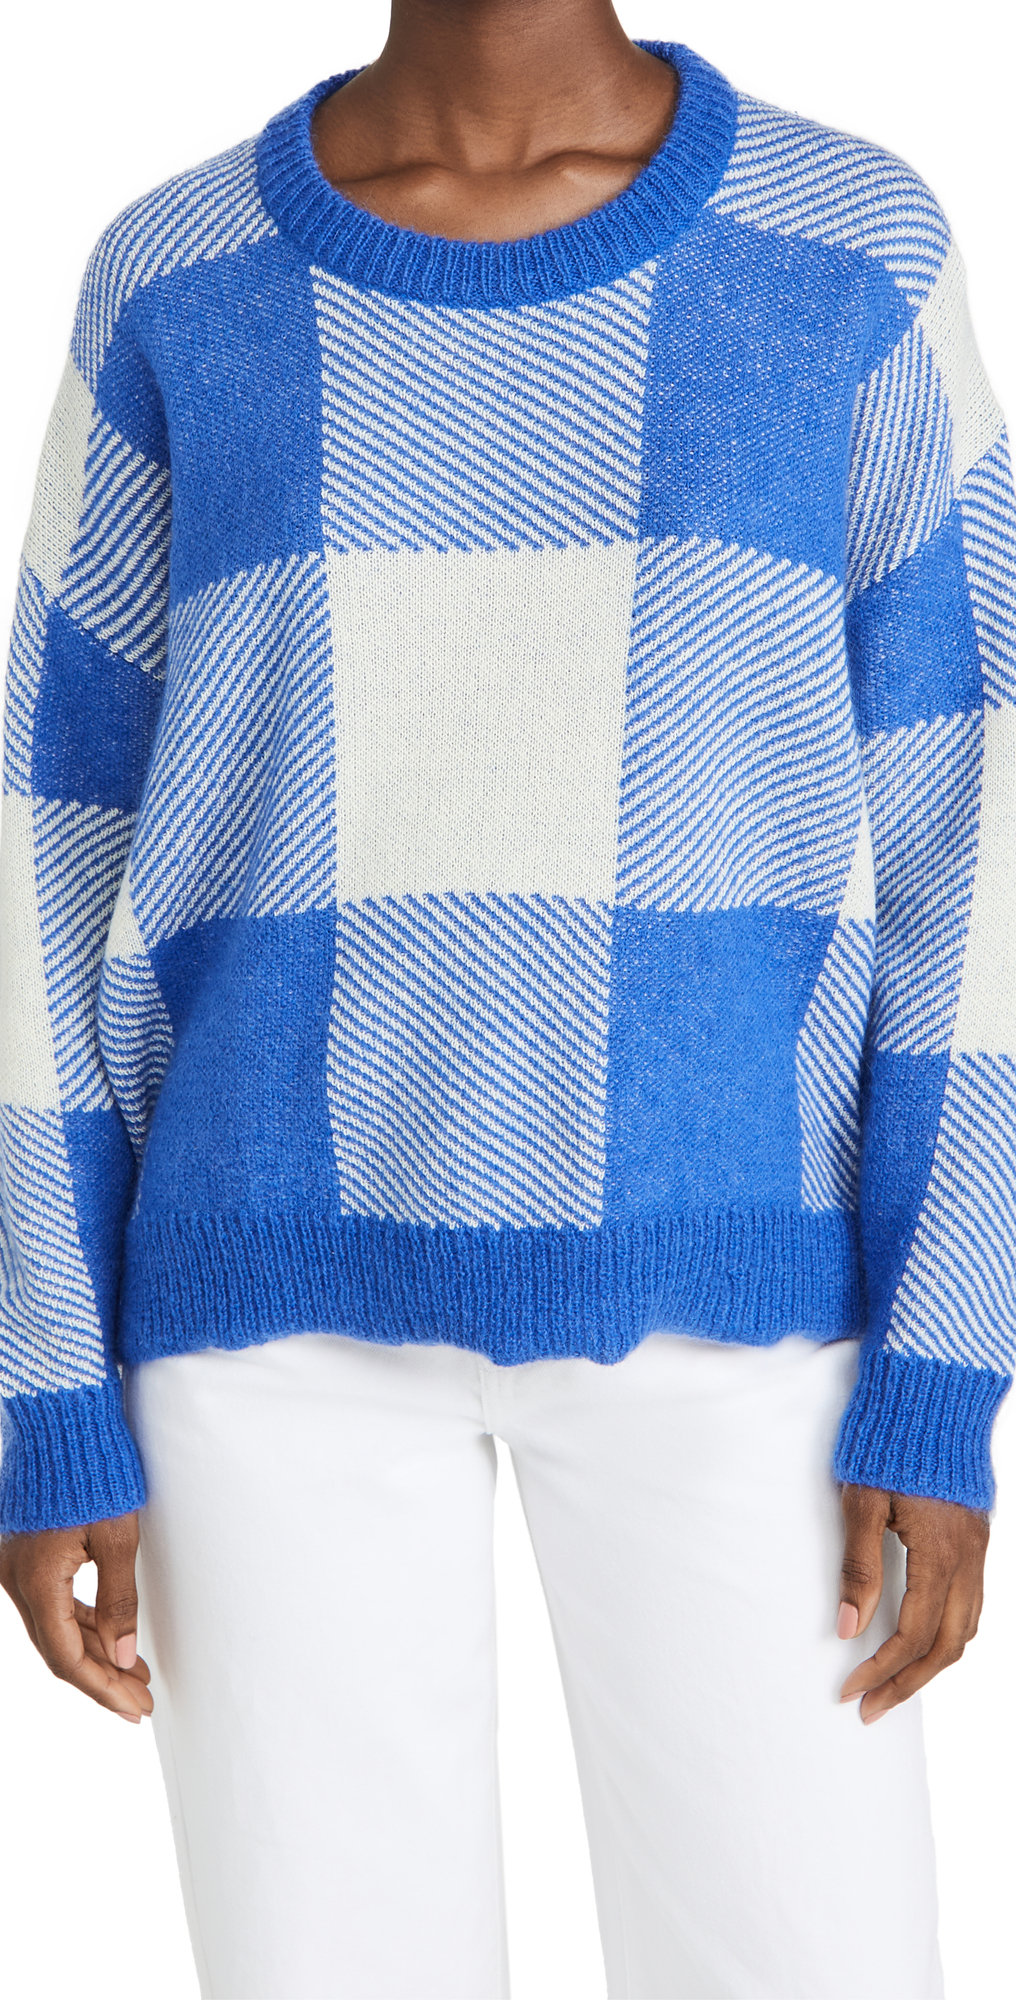 Tipps Knit Sweater